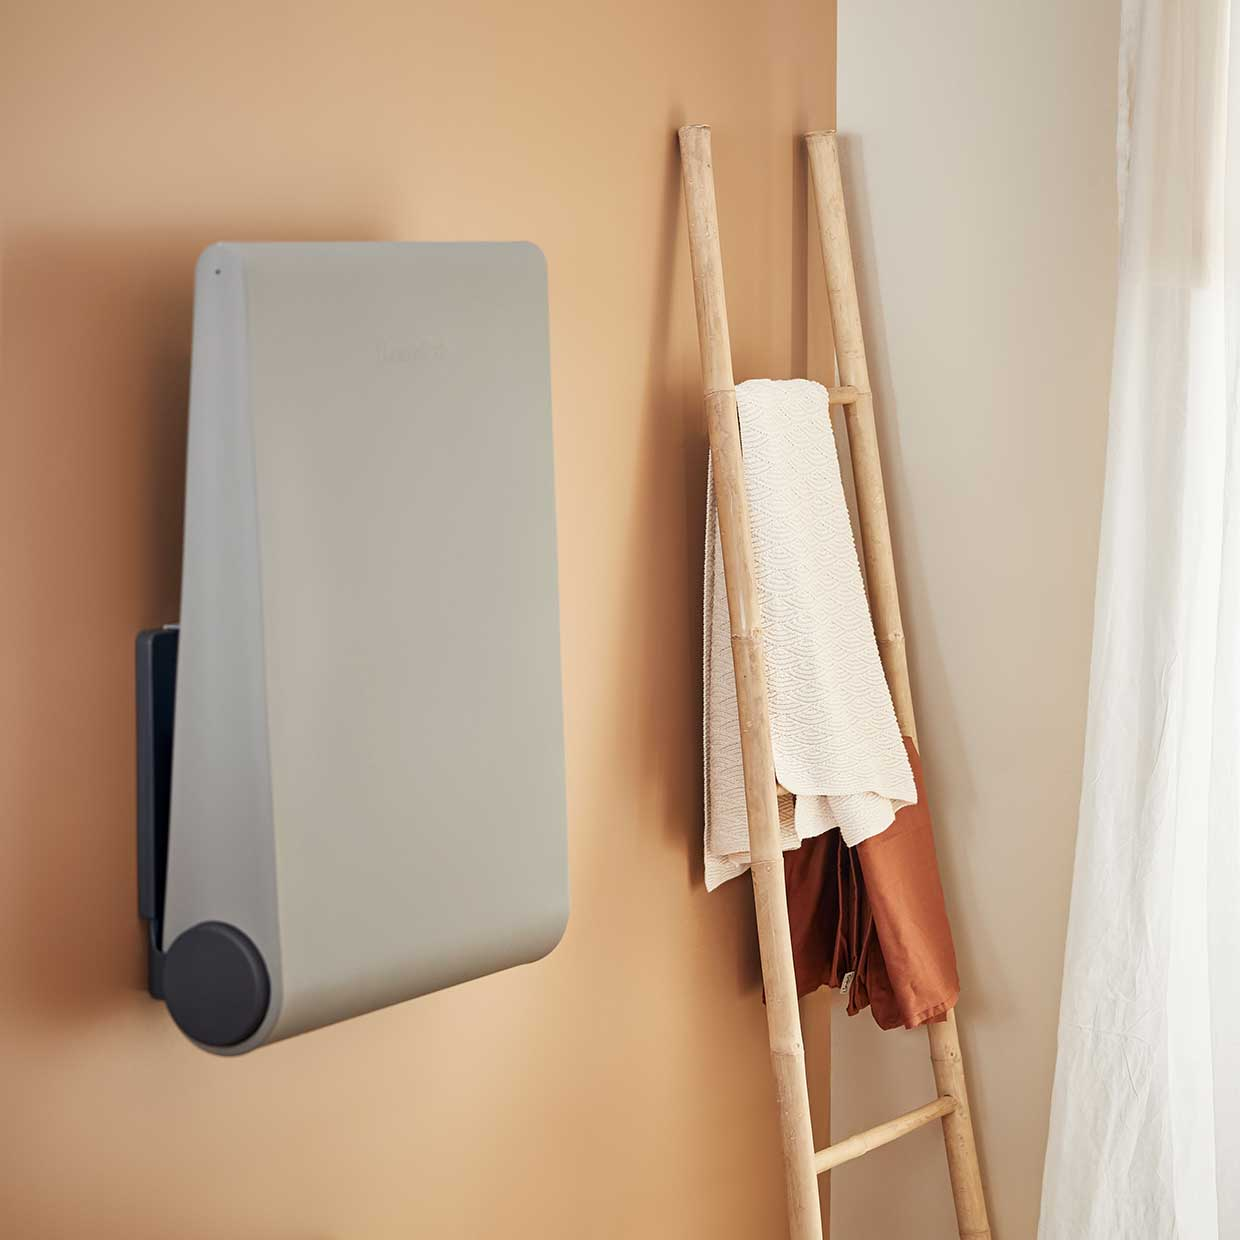 Image of: Wally Wall Mounted Changing Table By Leander Afilii